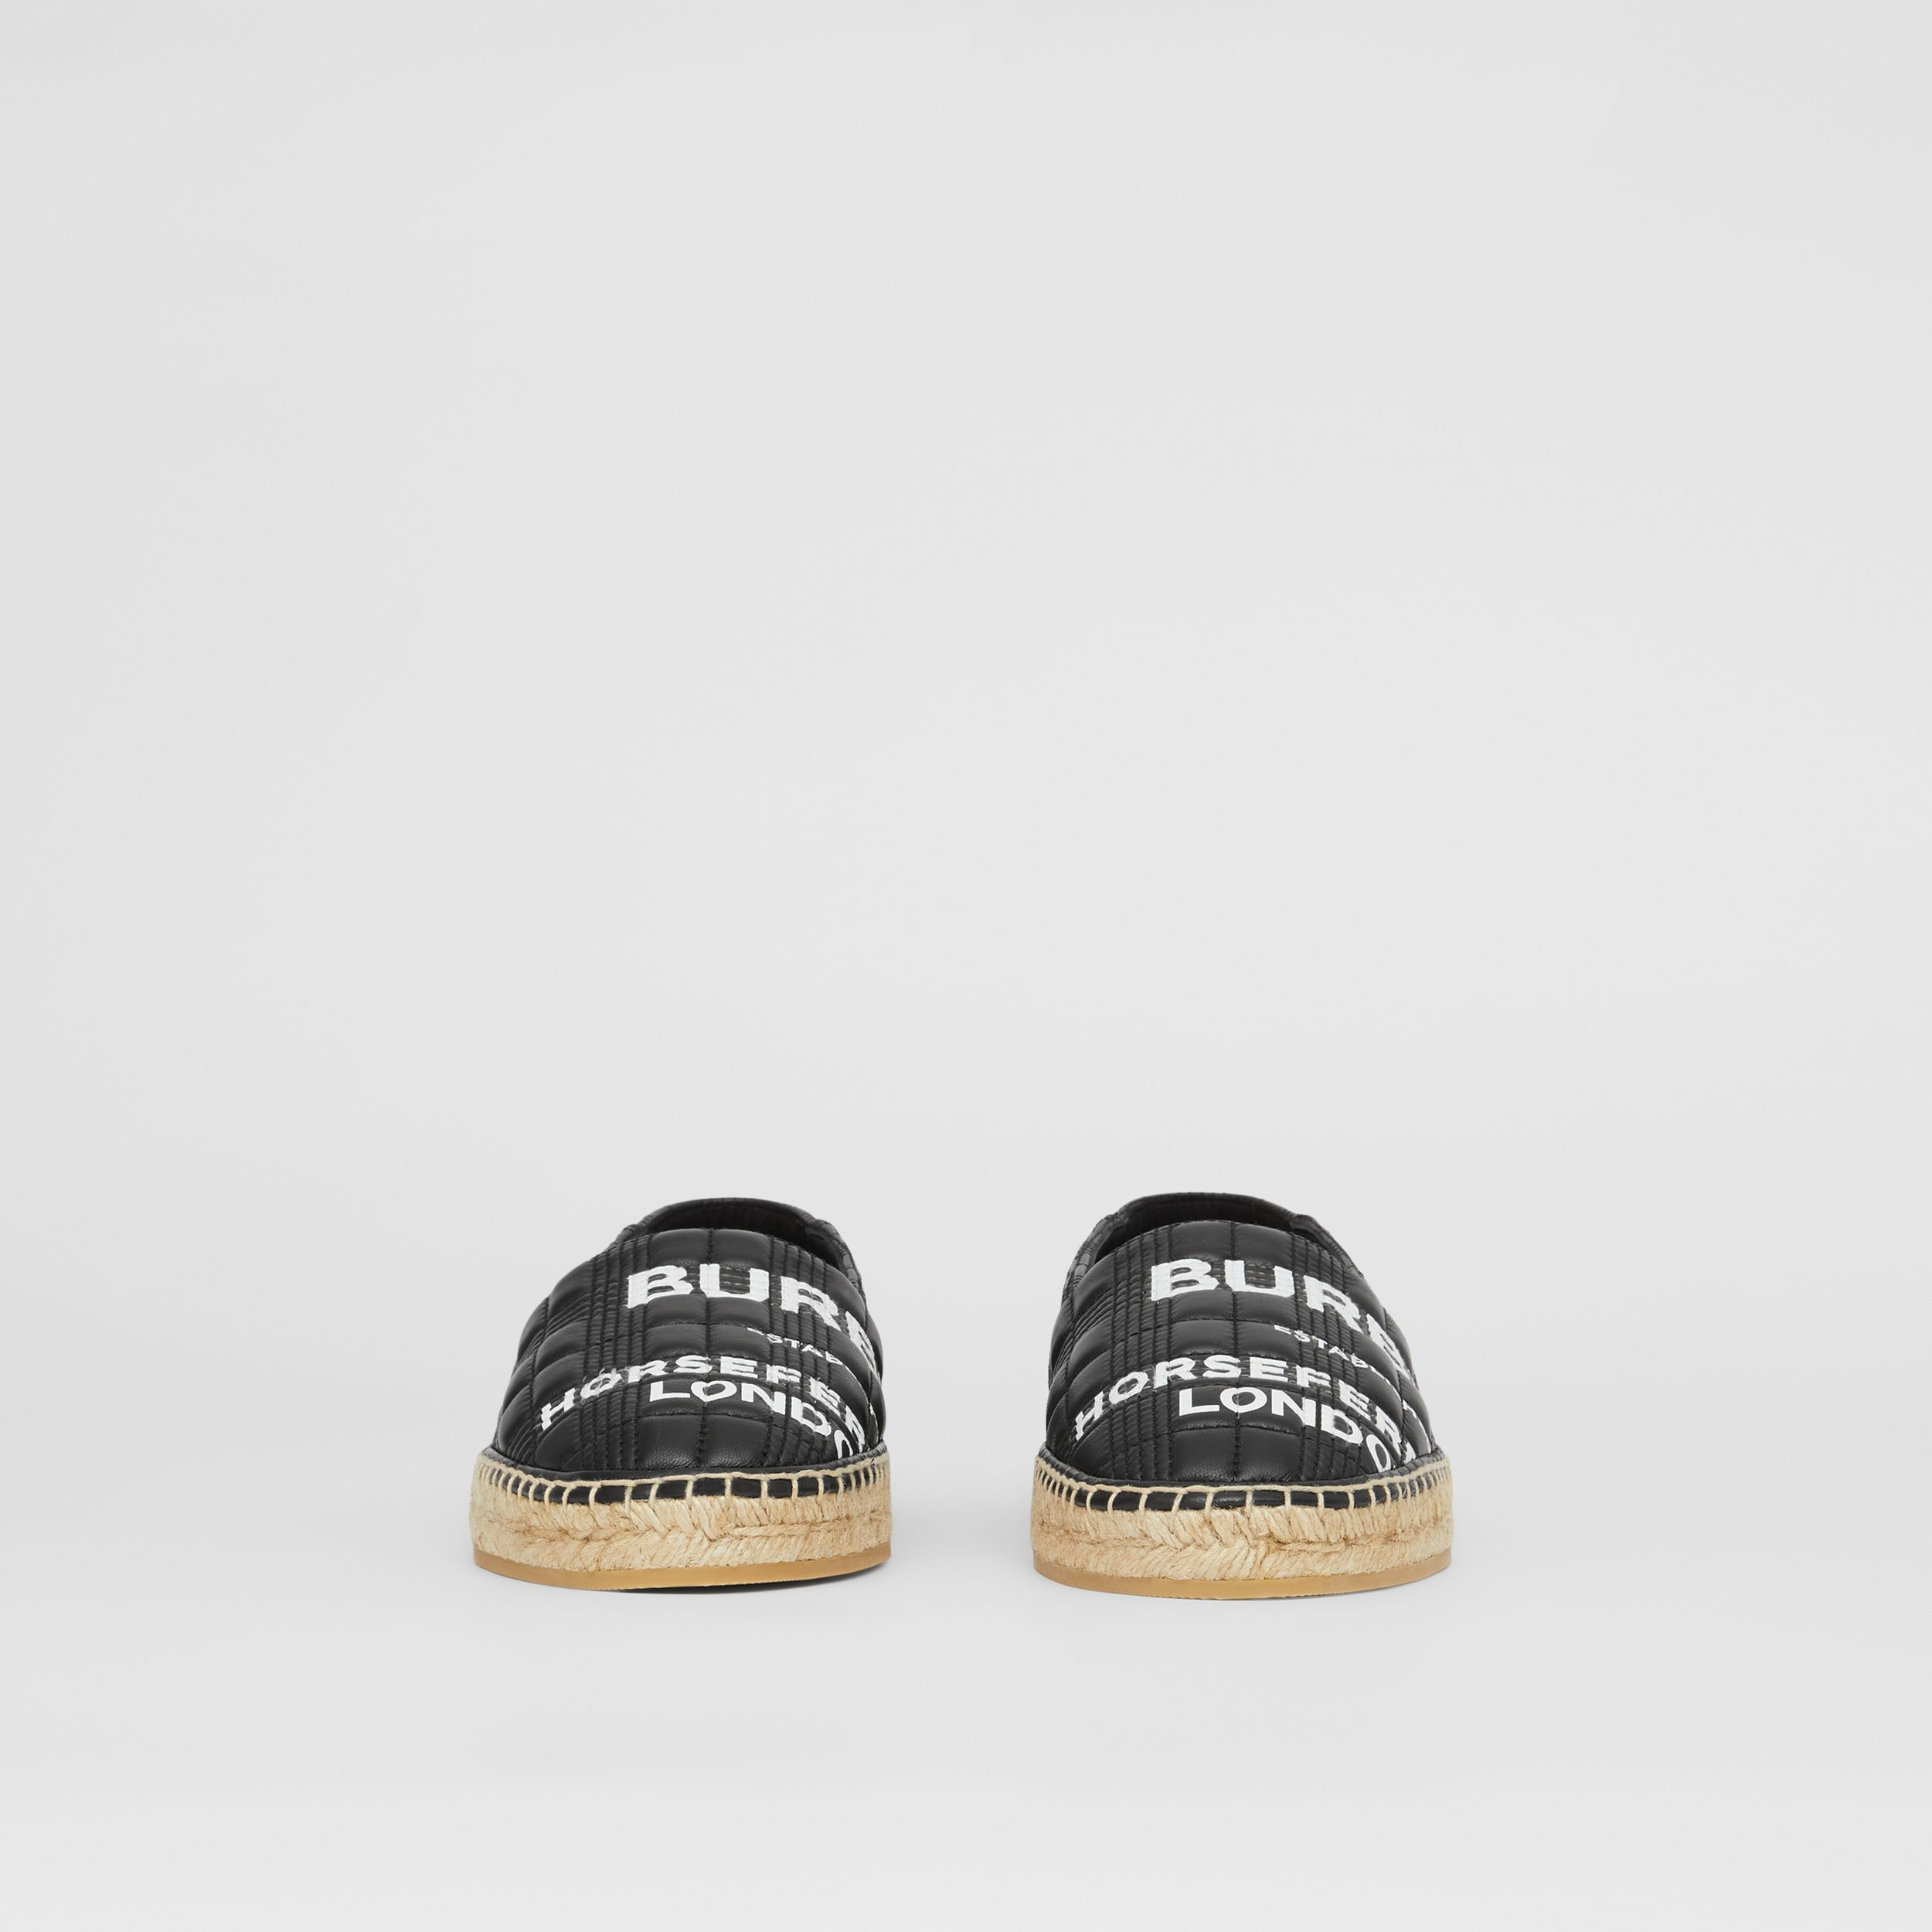 Horseferry Print Quilted Leather Espadrilles in Black - Men | Burberry - 4